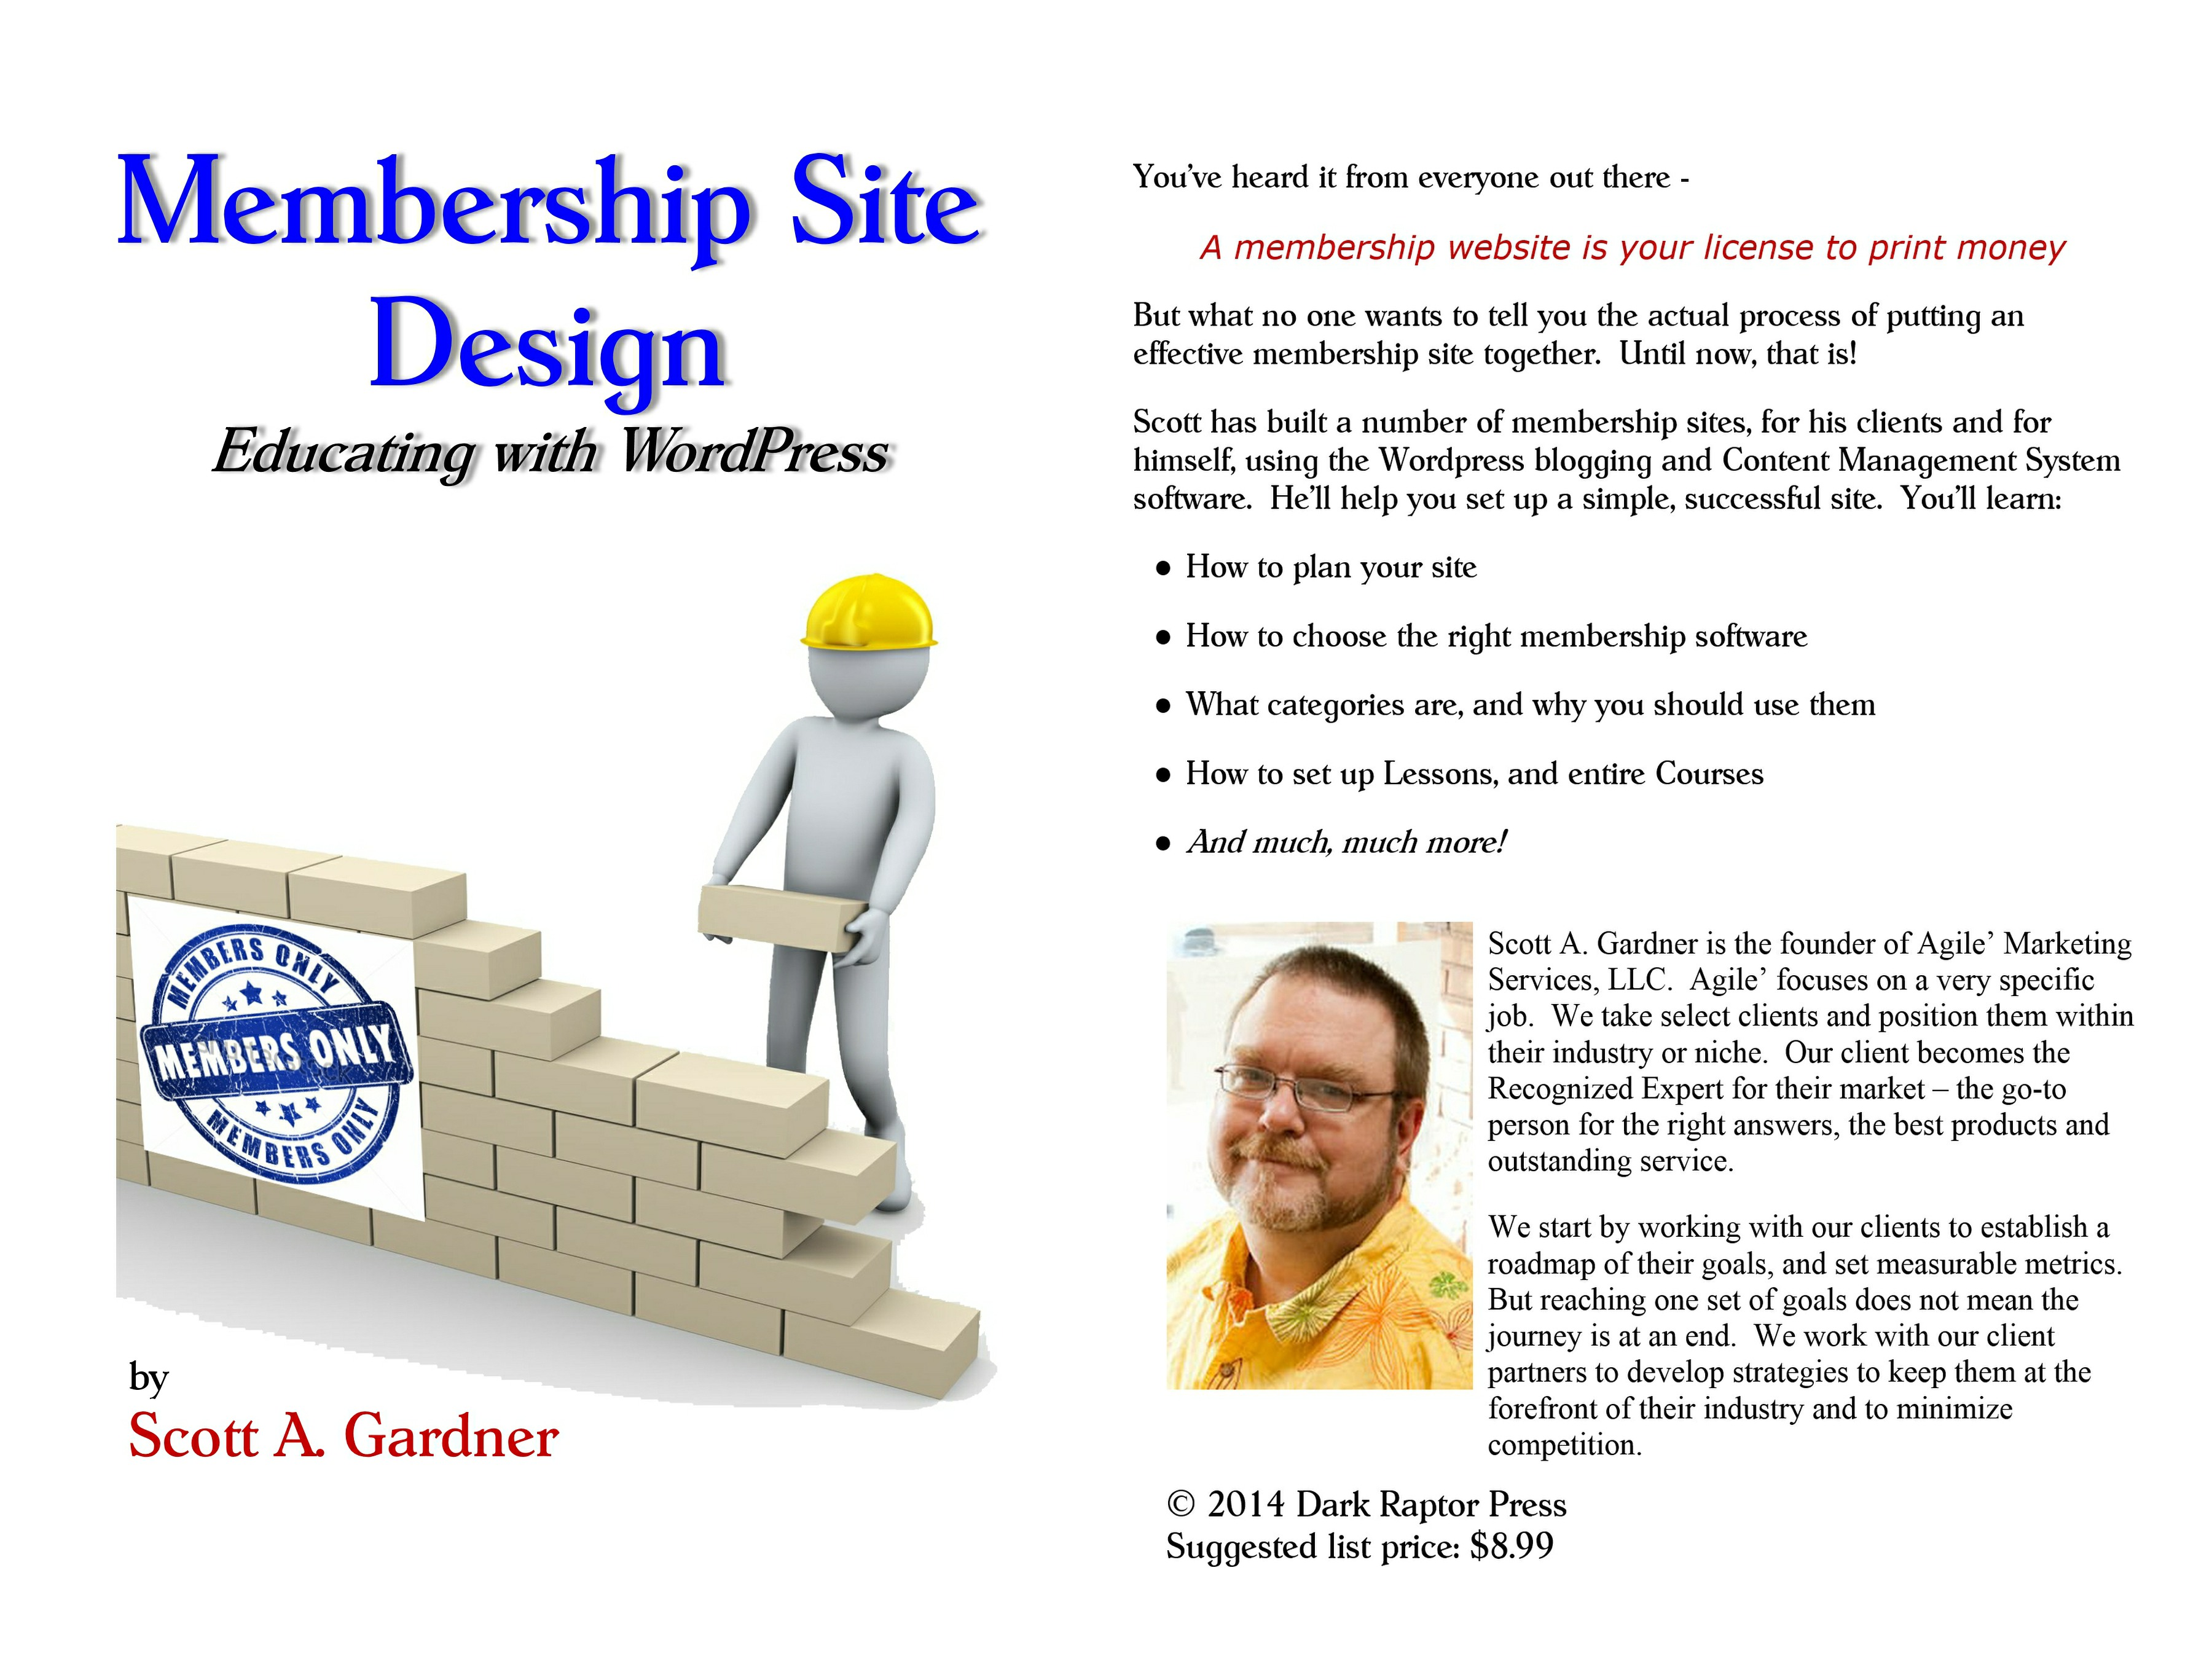 Membership Site Design Image